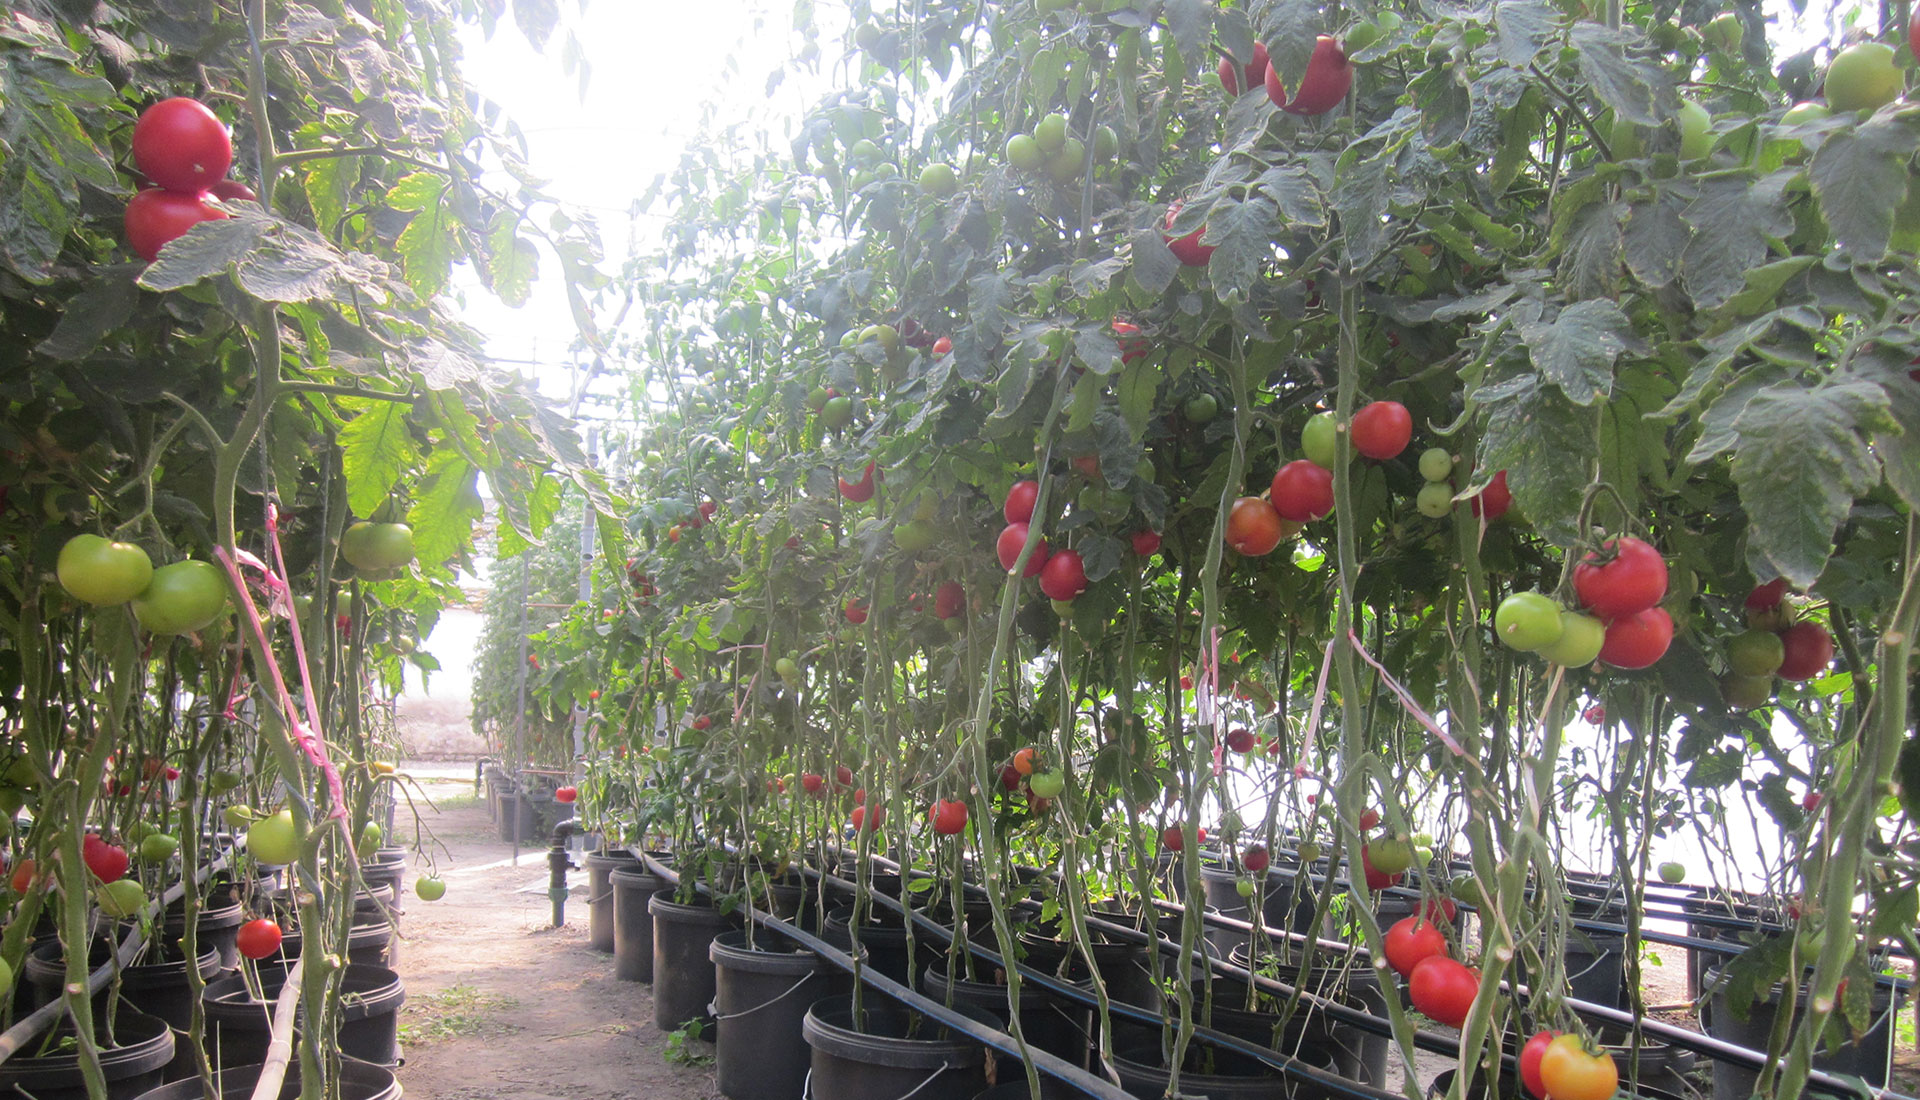 How To Grow Tomato In Aquaponic System - AquaponicsBuzz